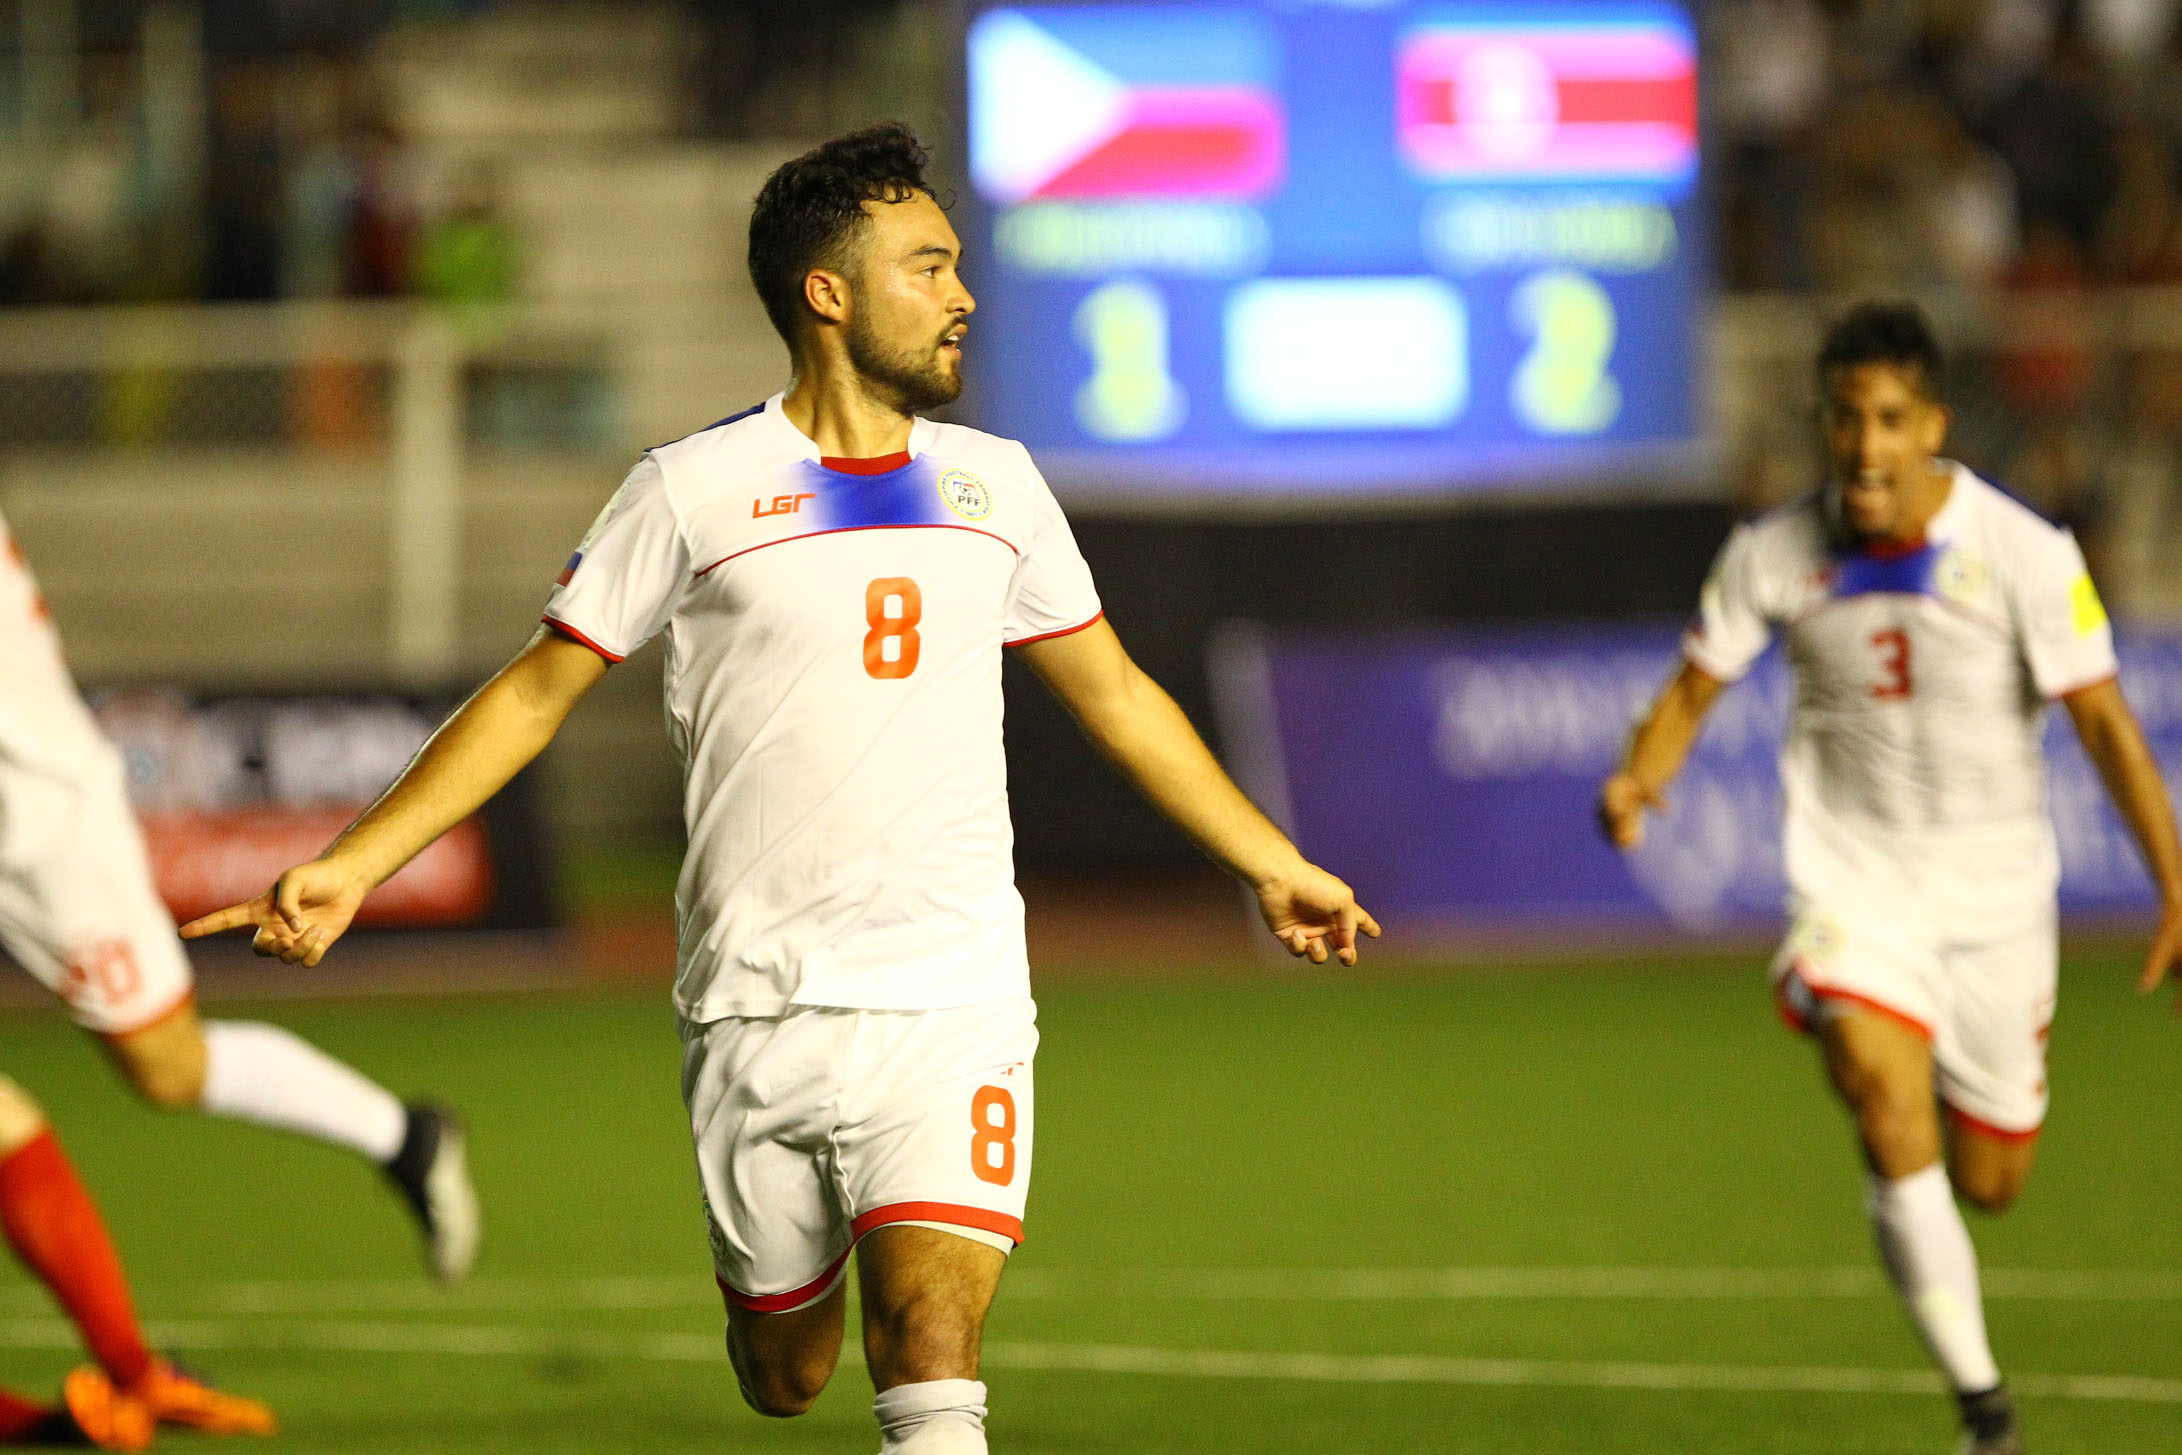 Manuel Ott, seen after scoring the team's second goal, proved himself to be irreplaceable for the Azkals. Photo by Josh Albelda/Rappler